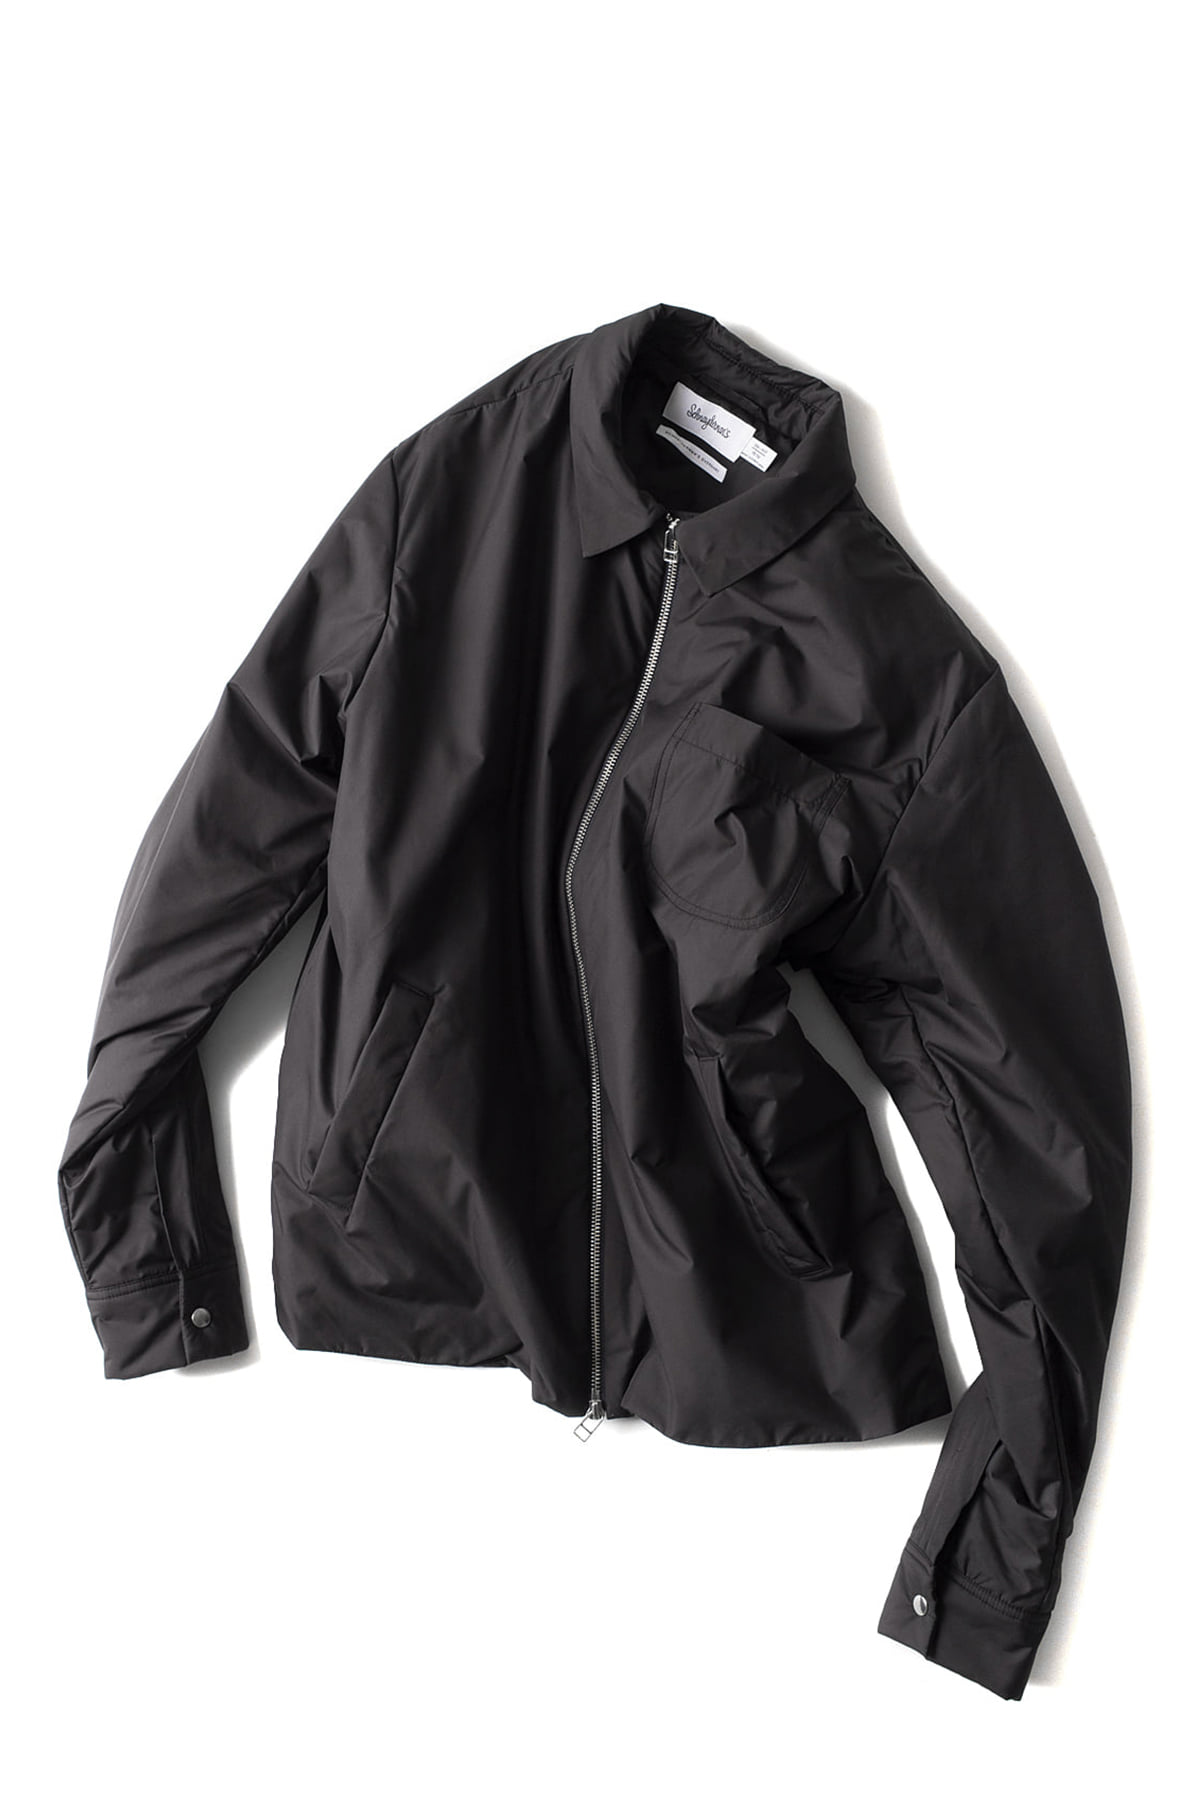 Schnayderman's : Overshirt Bomber One (Charcoal)